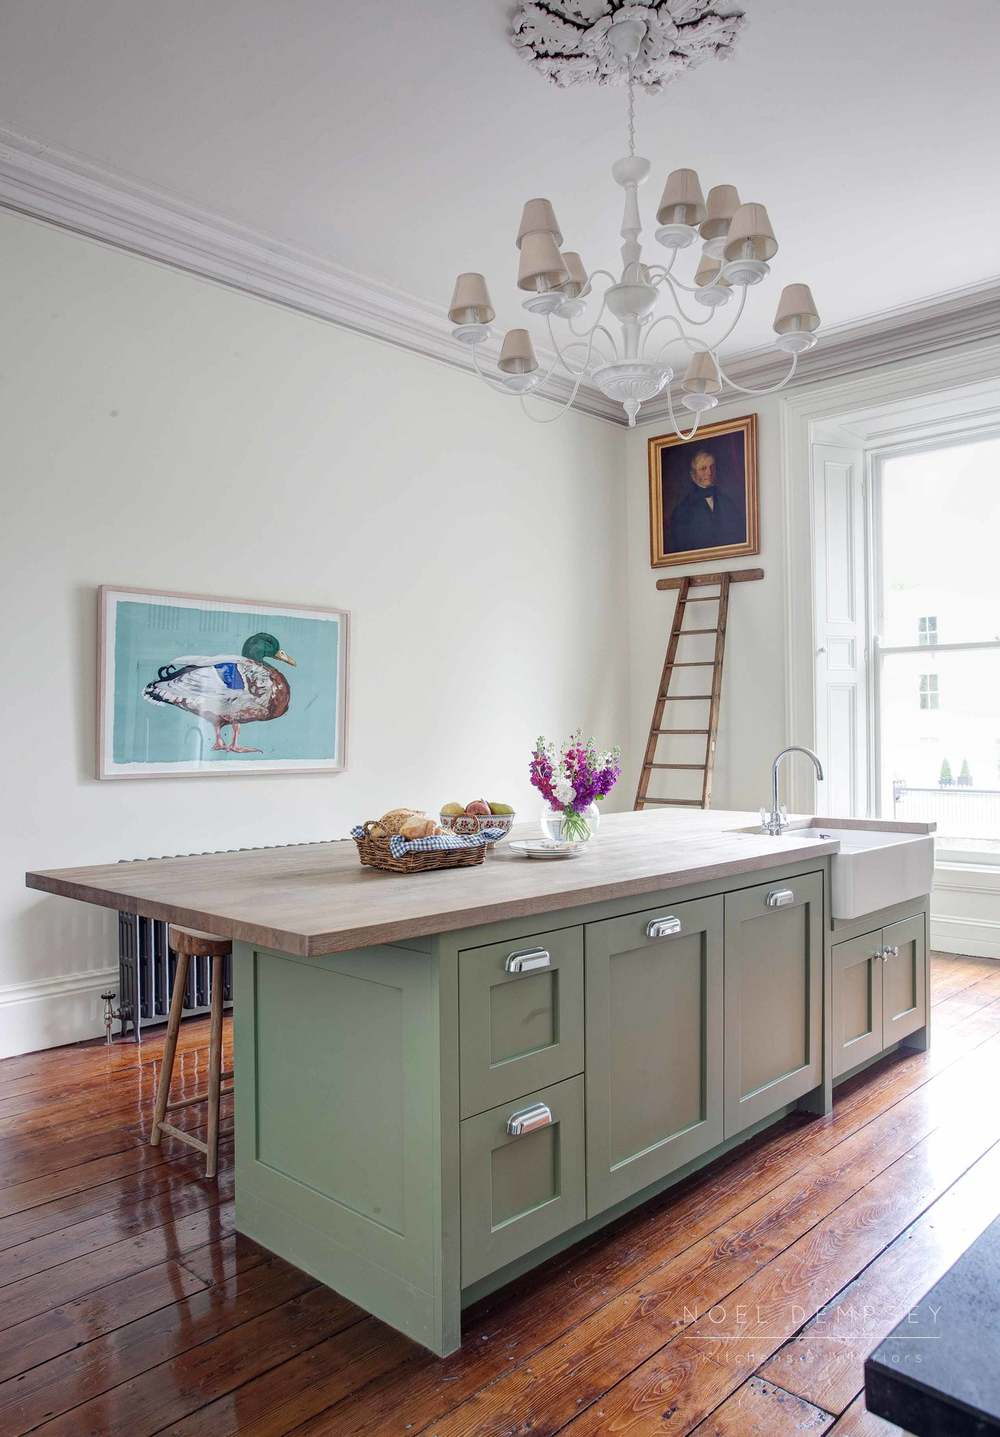 Belgrave-Plain-English-Kitchens-Ireland-4.jpg